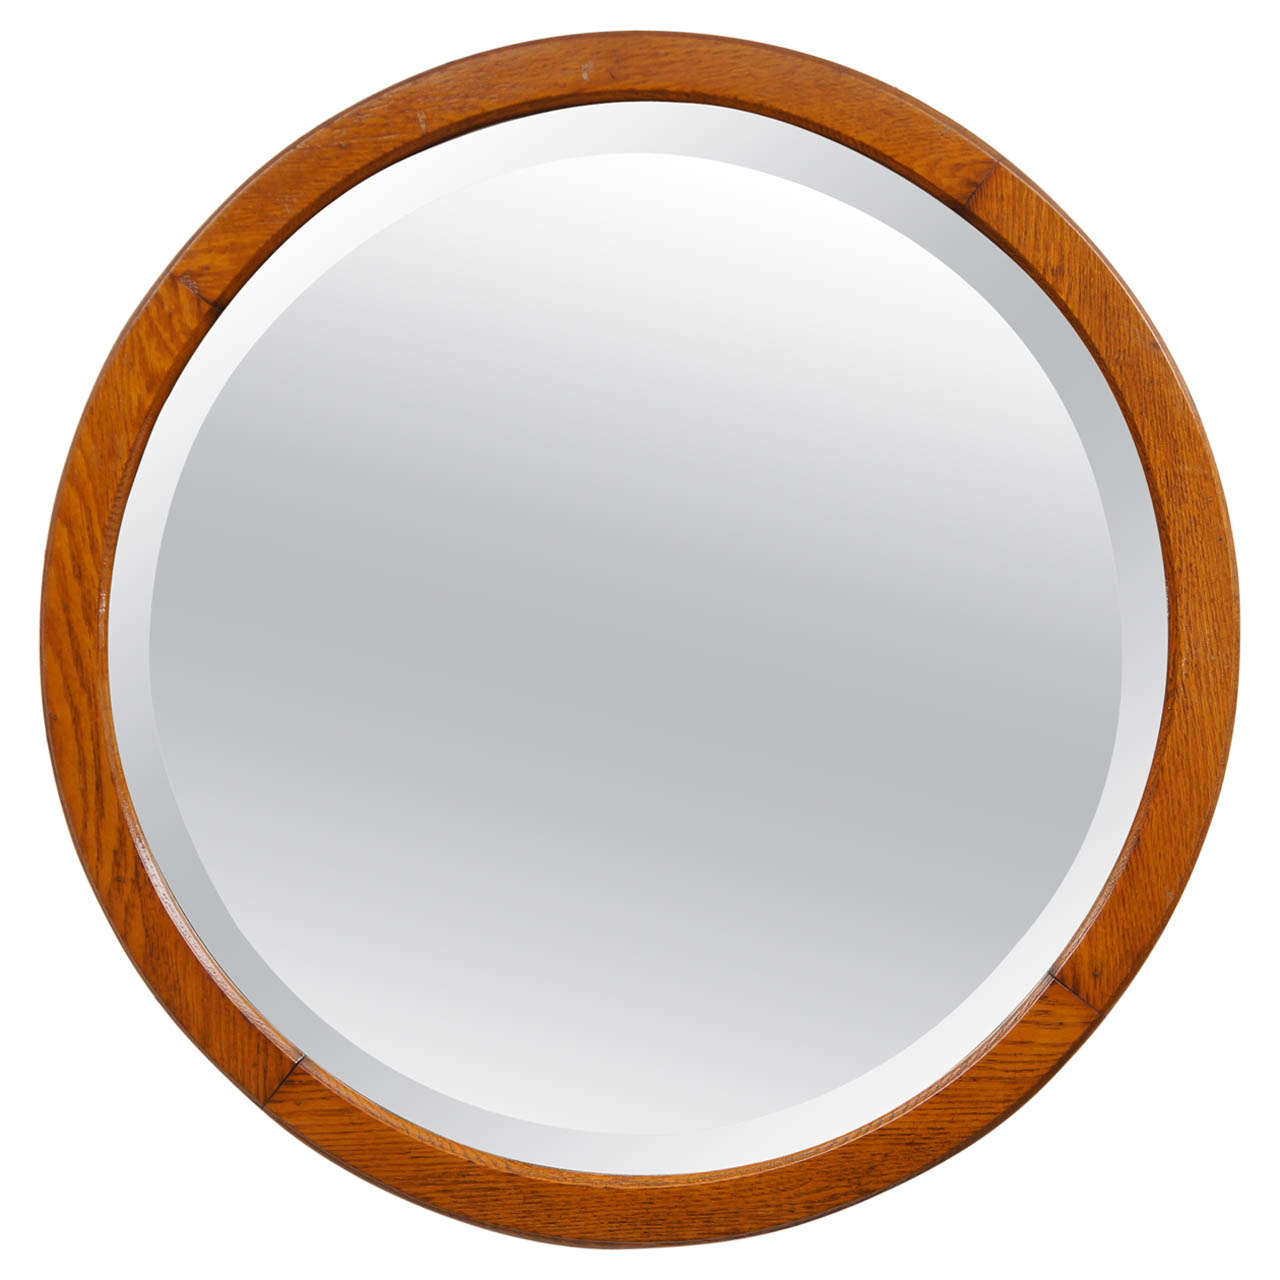 American beveled glass round mirror at 1stdibs for Beveled glass mirror